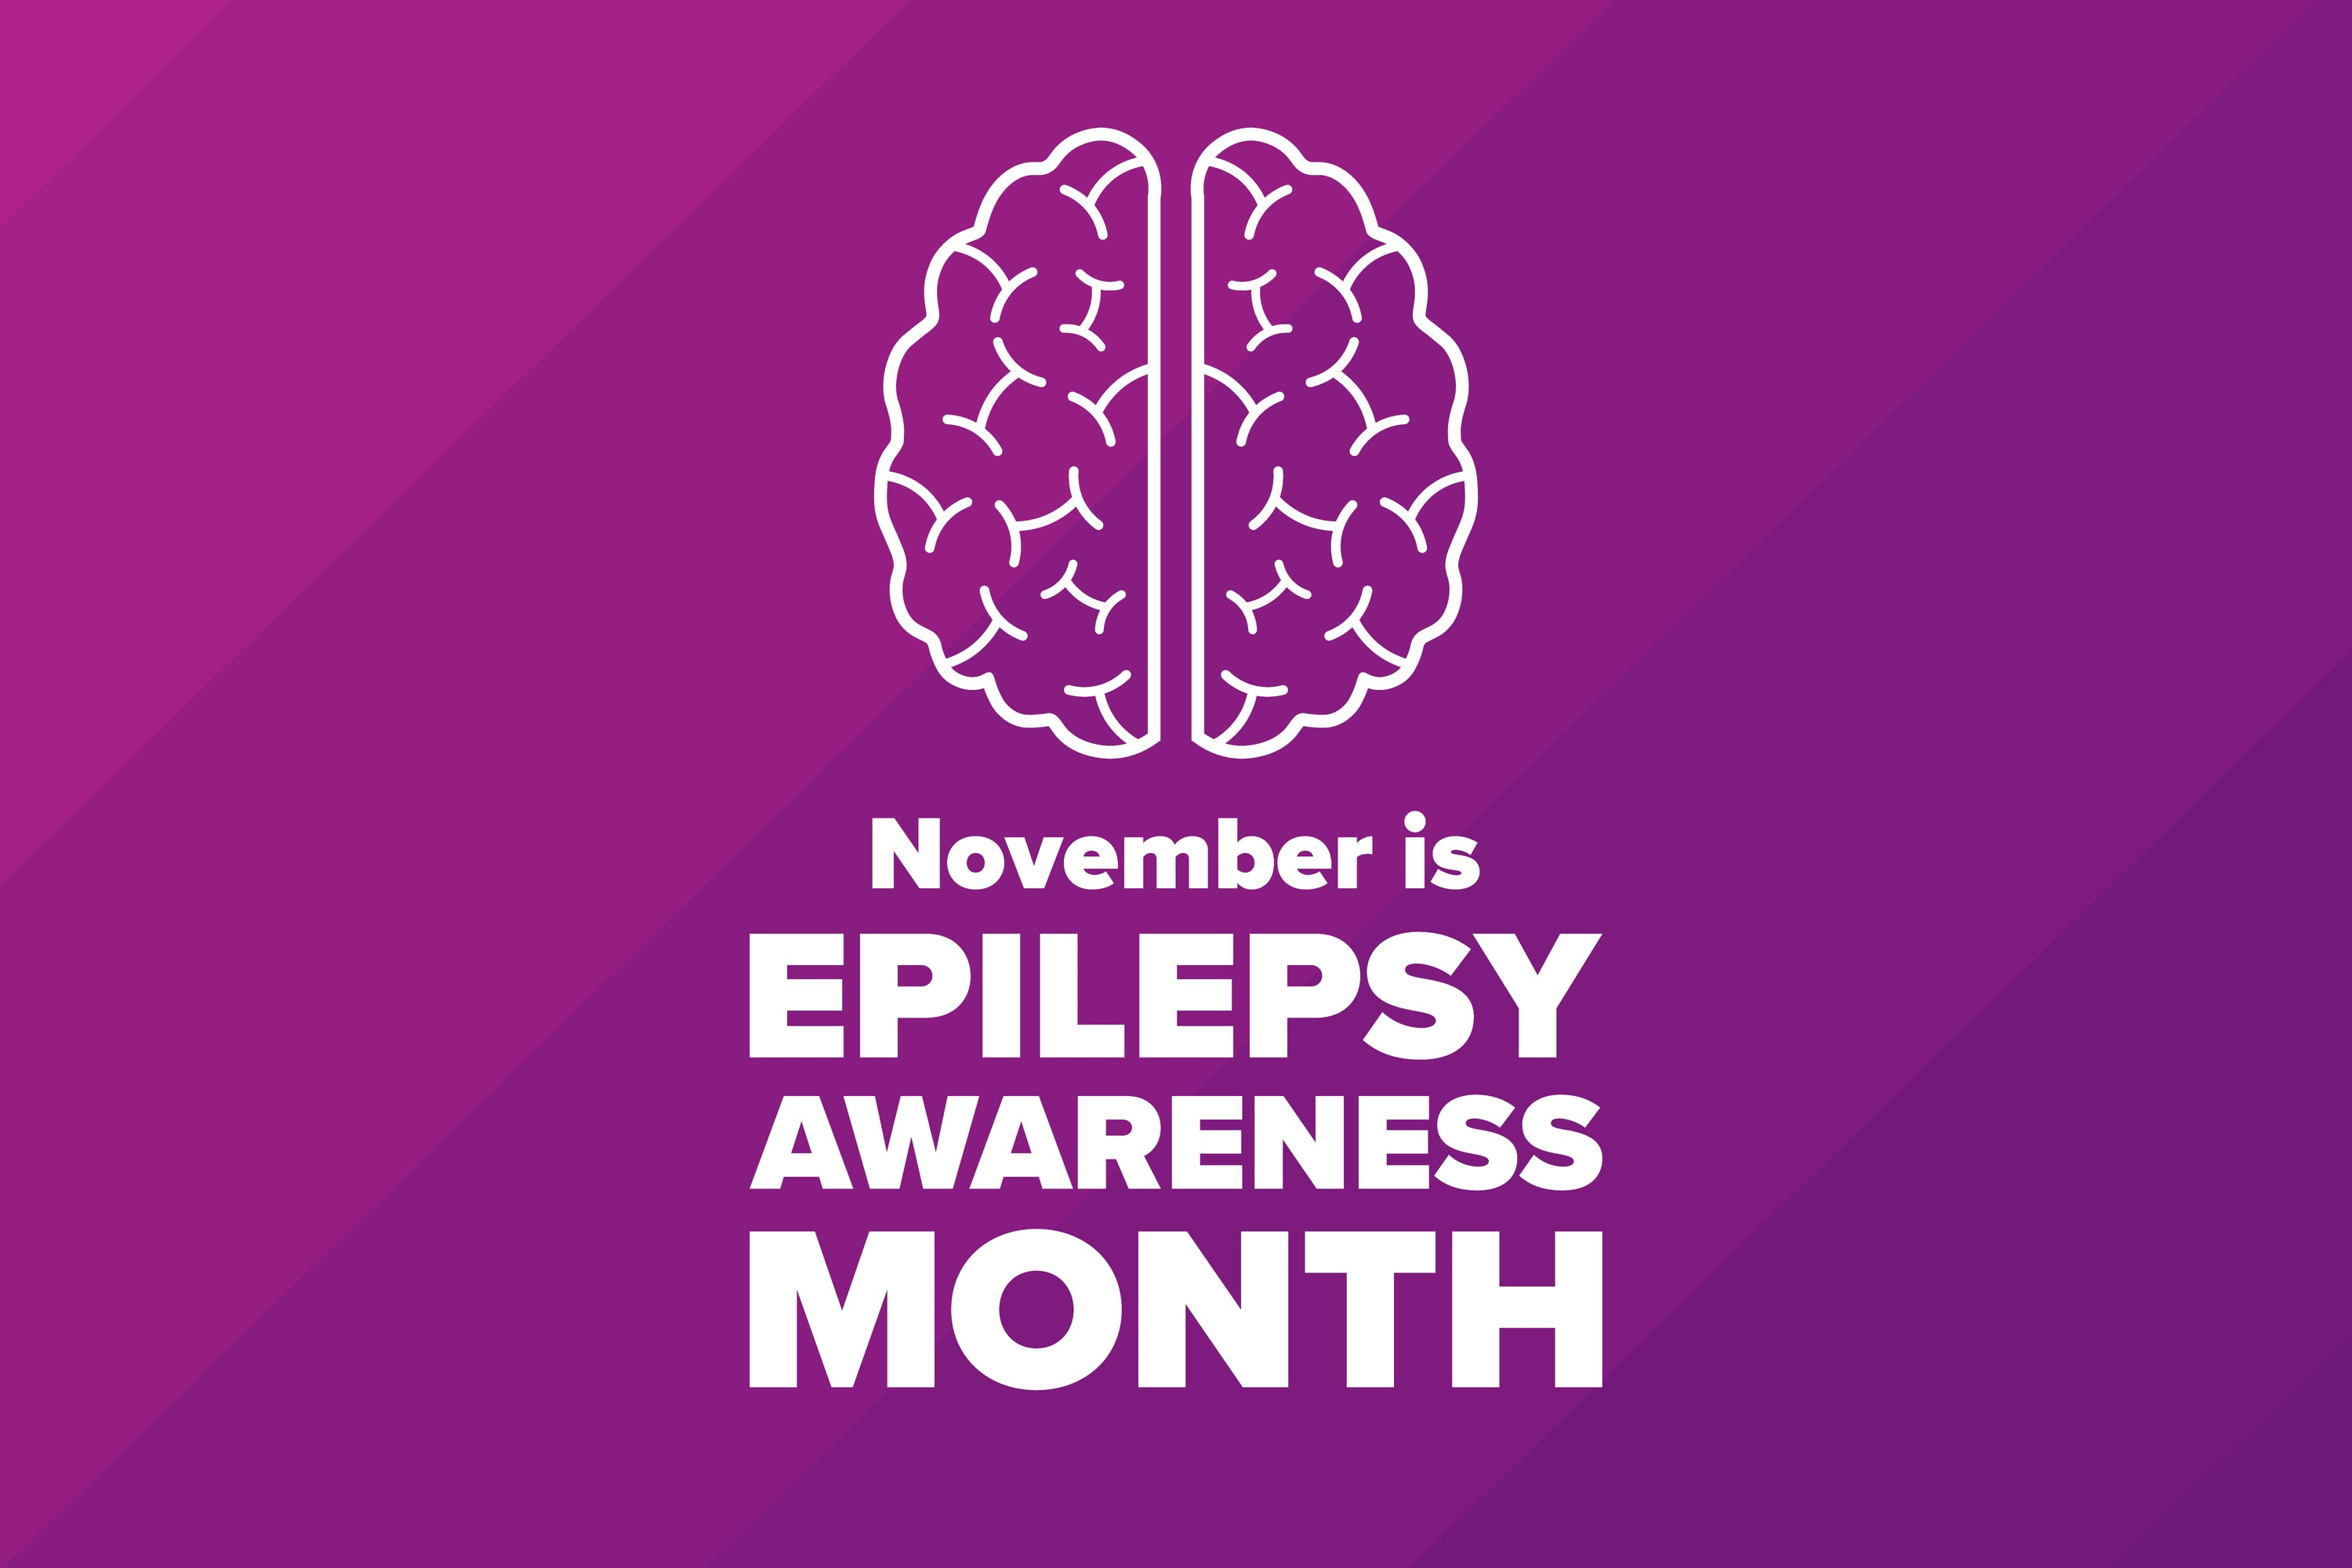 November is Epilepsy Awareness Month